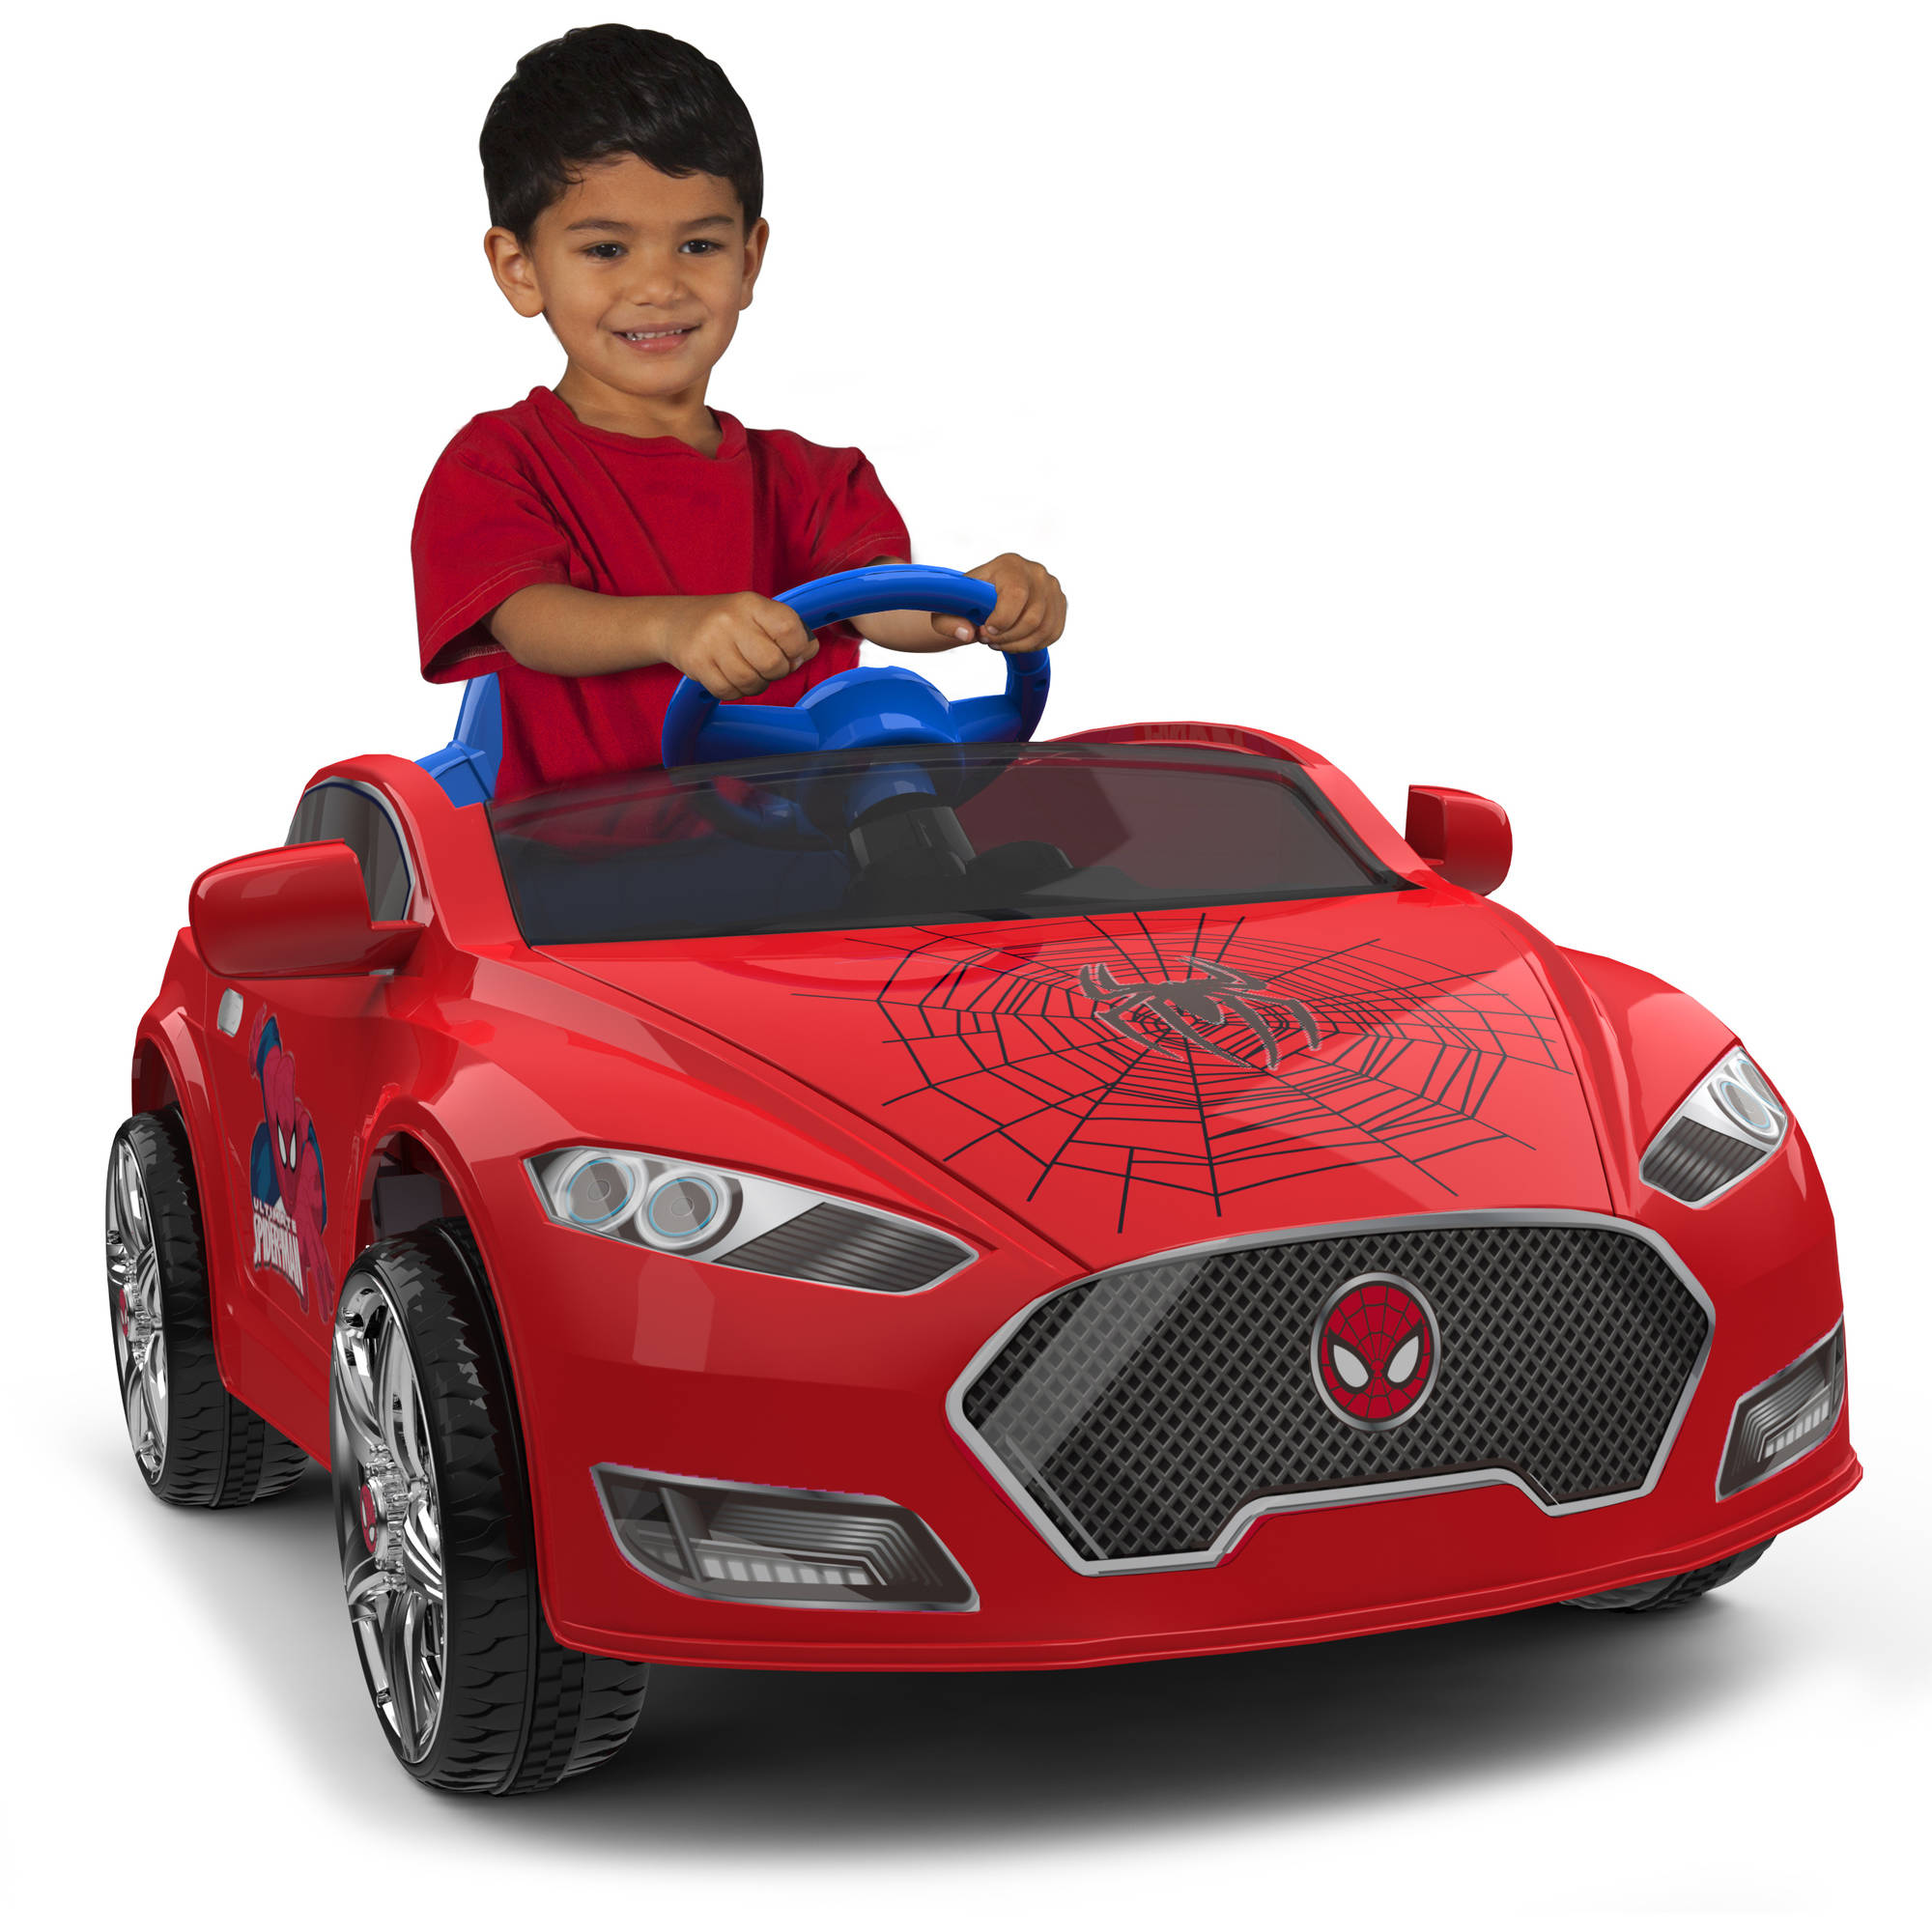 Spider-Man 6V Speed Electric Battery-Powered Coupe Ride-On Image 1 of 6